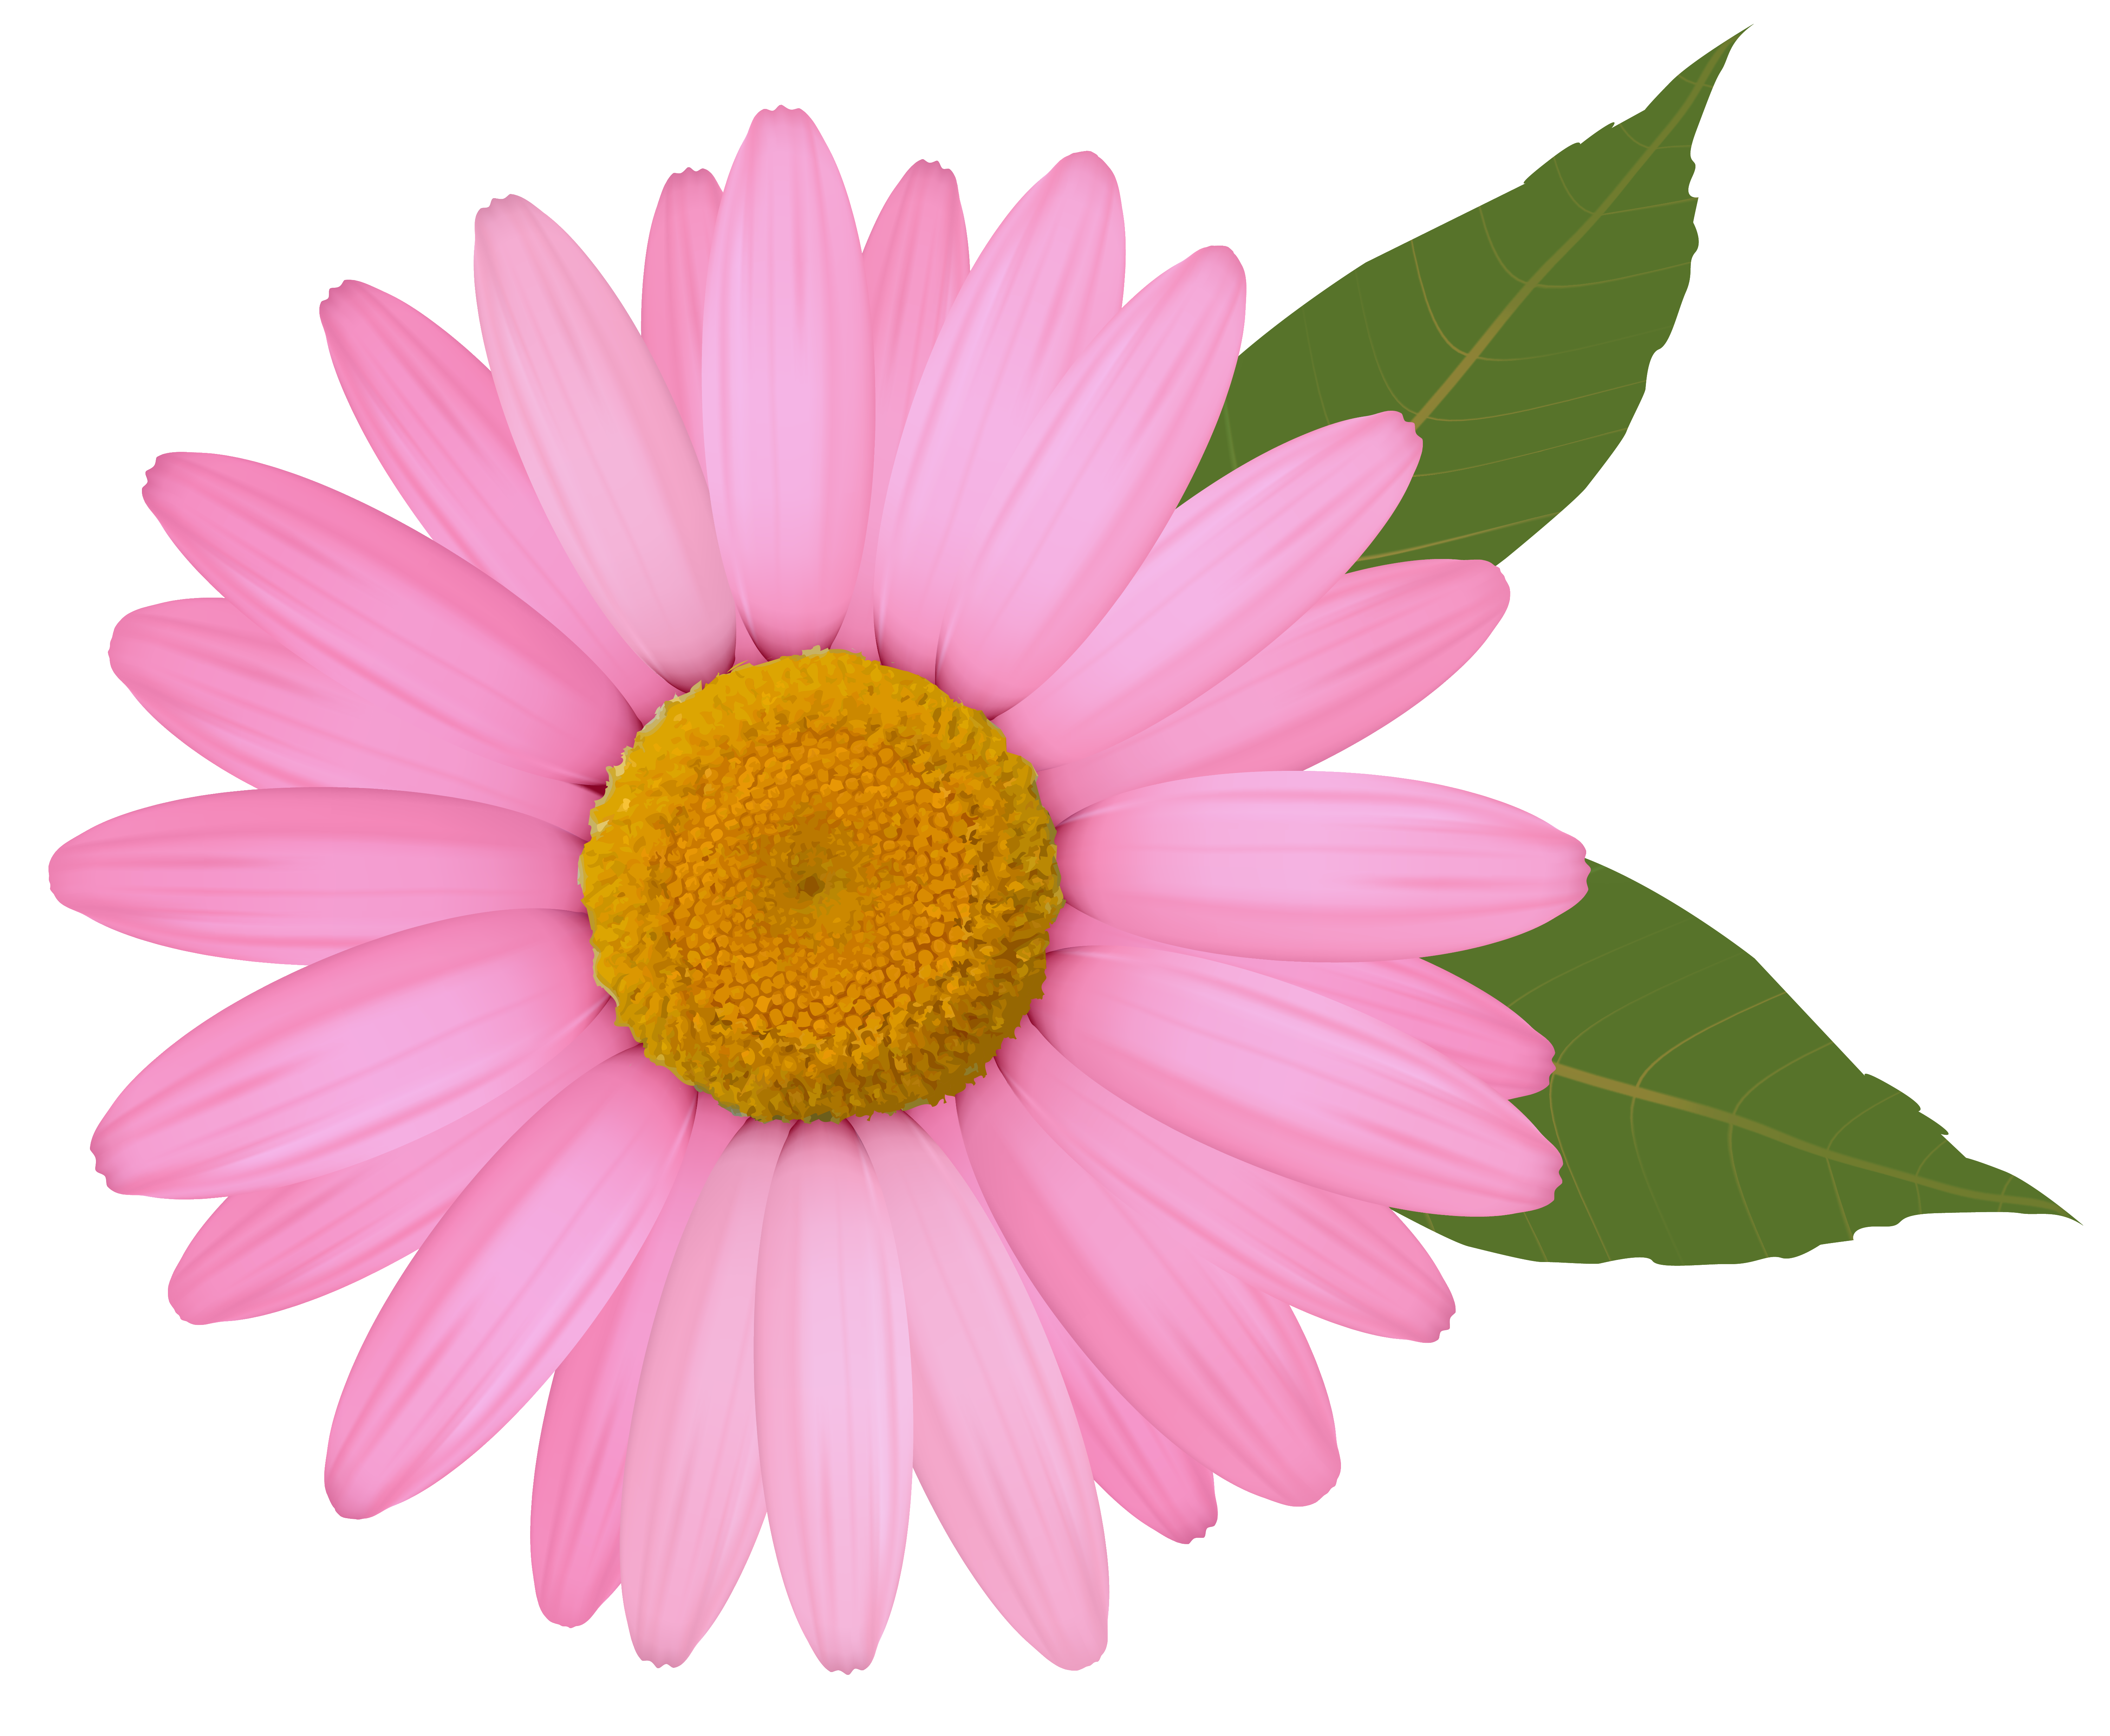 Daisy clipart. Pink png image gallery